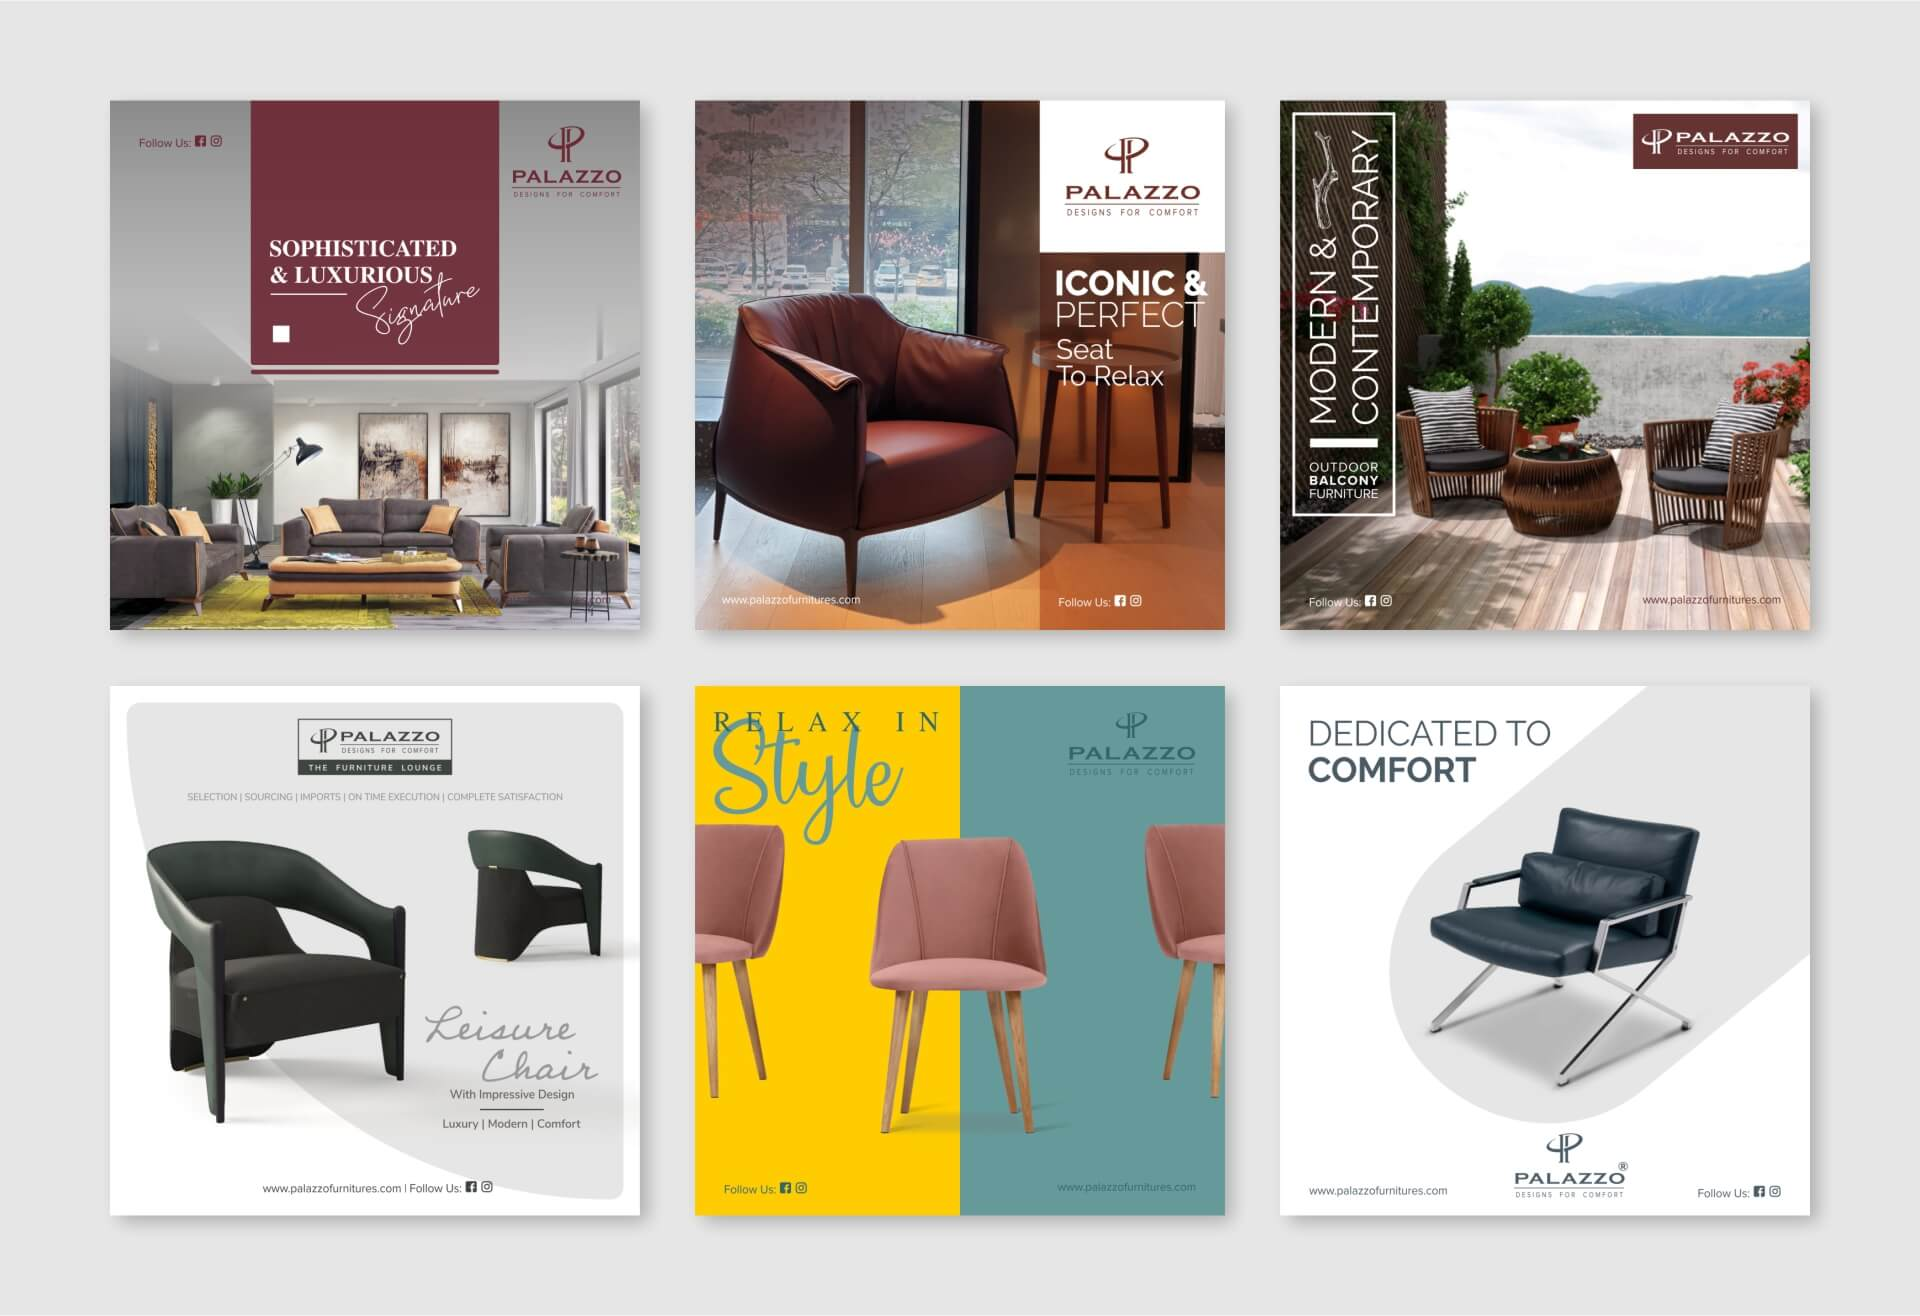 Social Media Marketing For Luxurious Furniture Brand To Win High End Customers 03